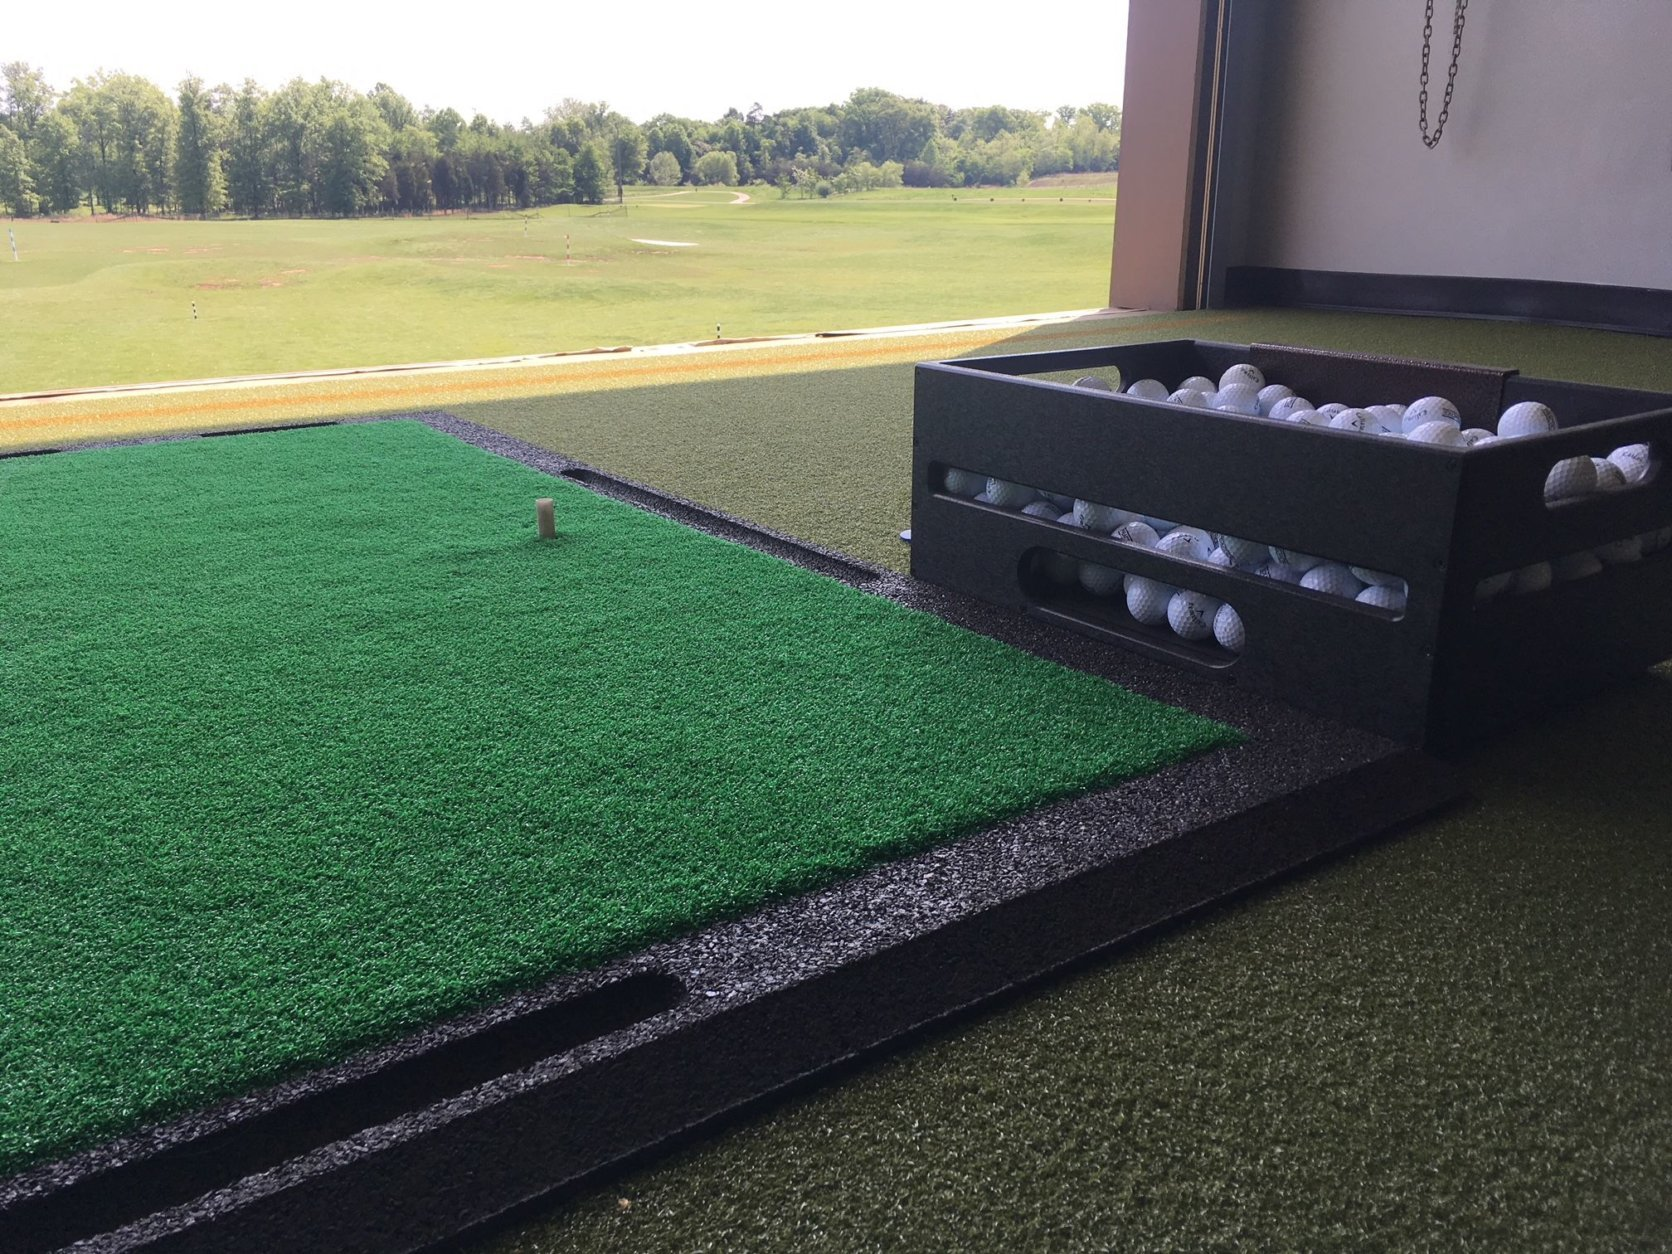 The Launchbox Golf option at 1757 Golf Club is the first of its kind in the D.C. area, merging elements of traditional golf and Topgolf. (WTOP/Noah Frank)